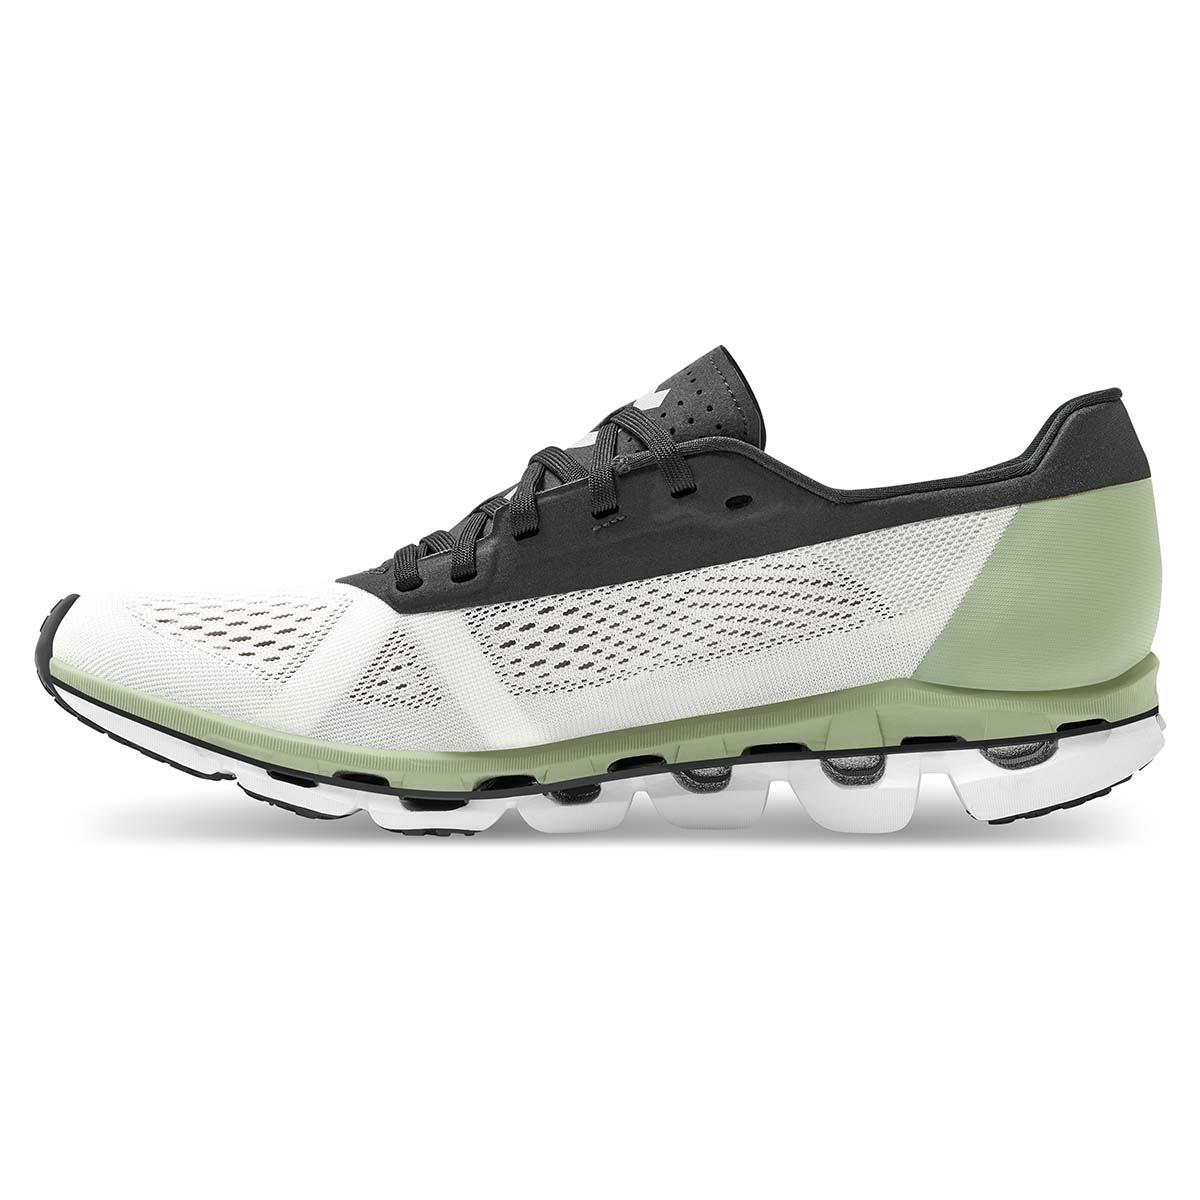 Women's On Cloudboom Running Shoe - Color: White/Black - Size: 5 - Width: Regular, White/Black, large, image 3